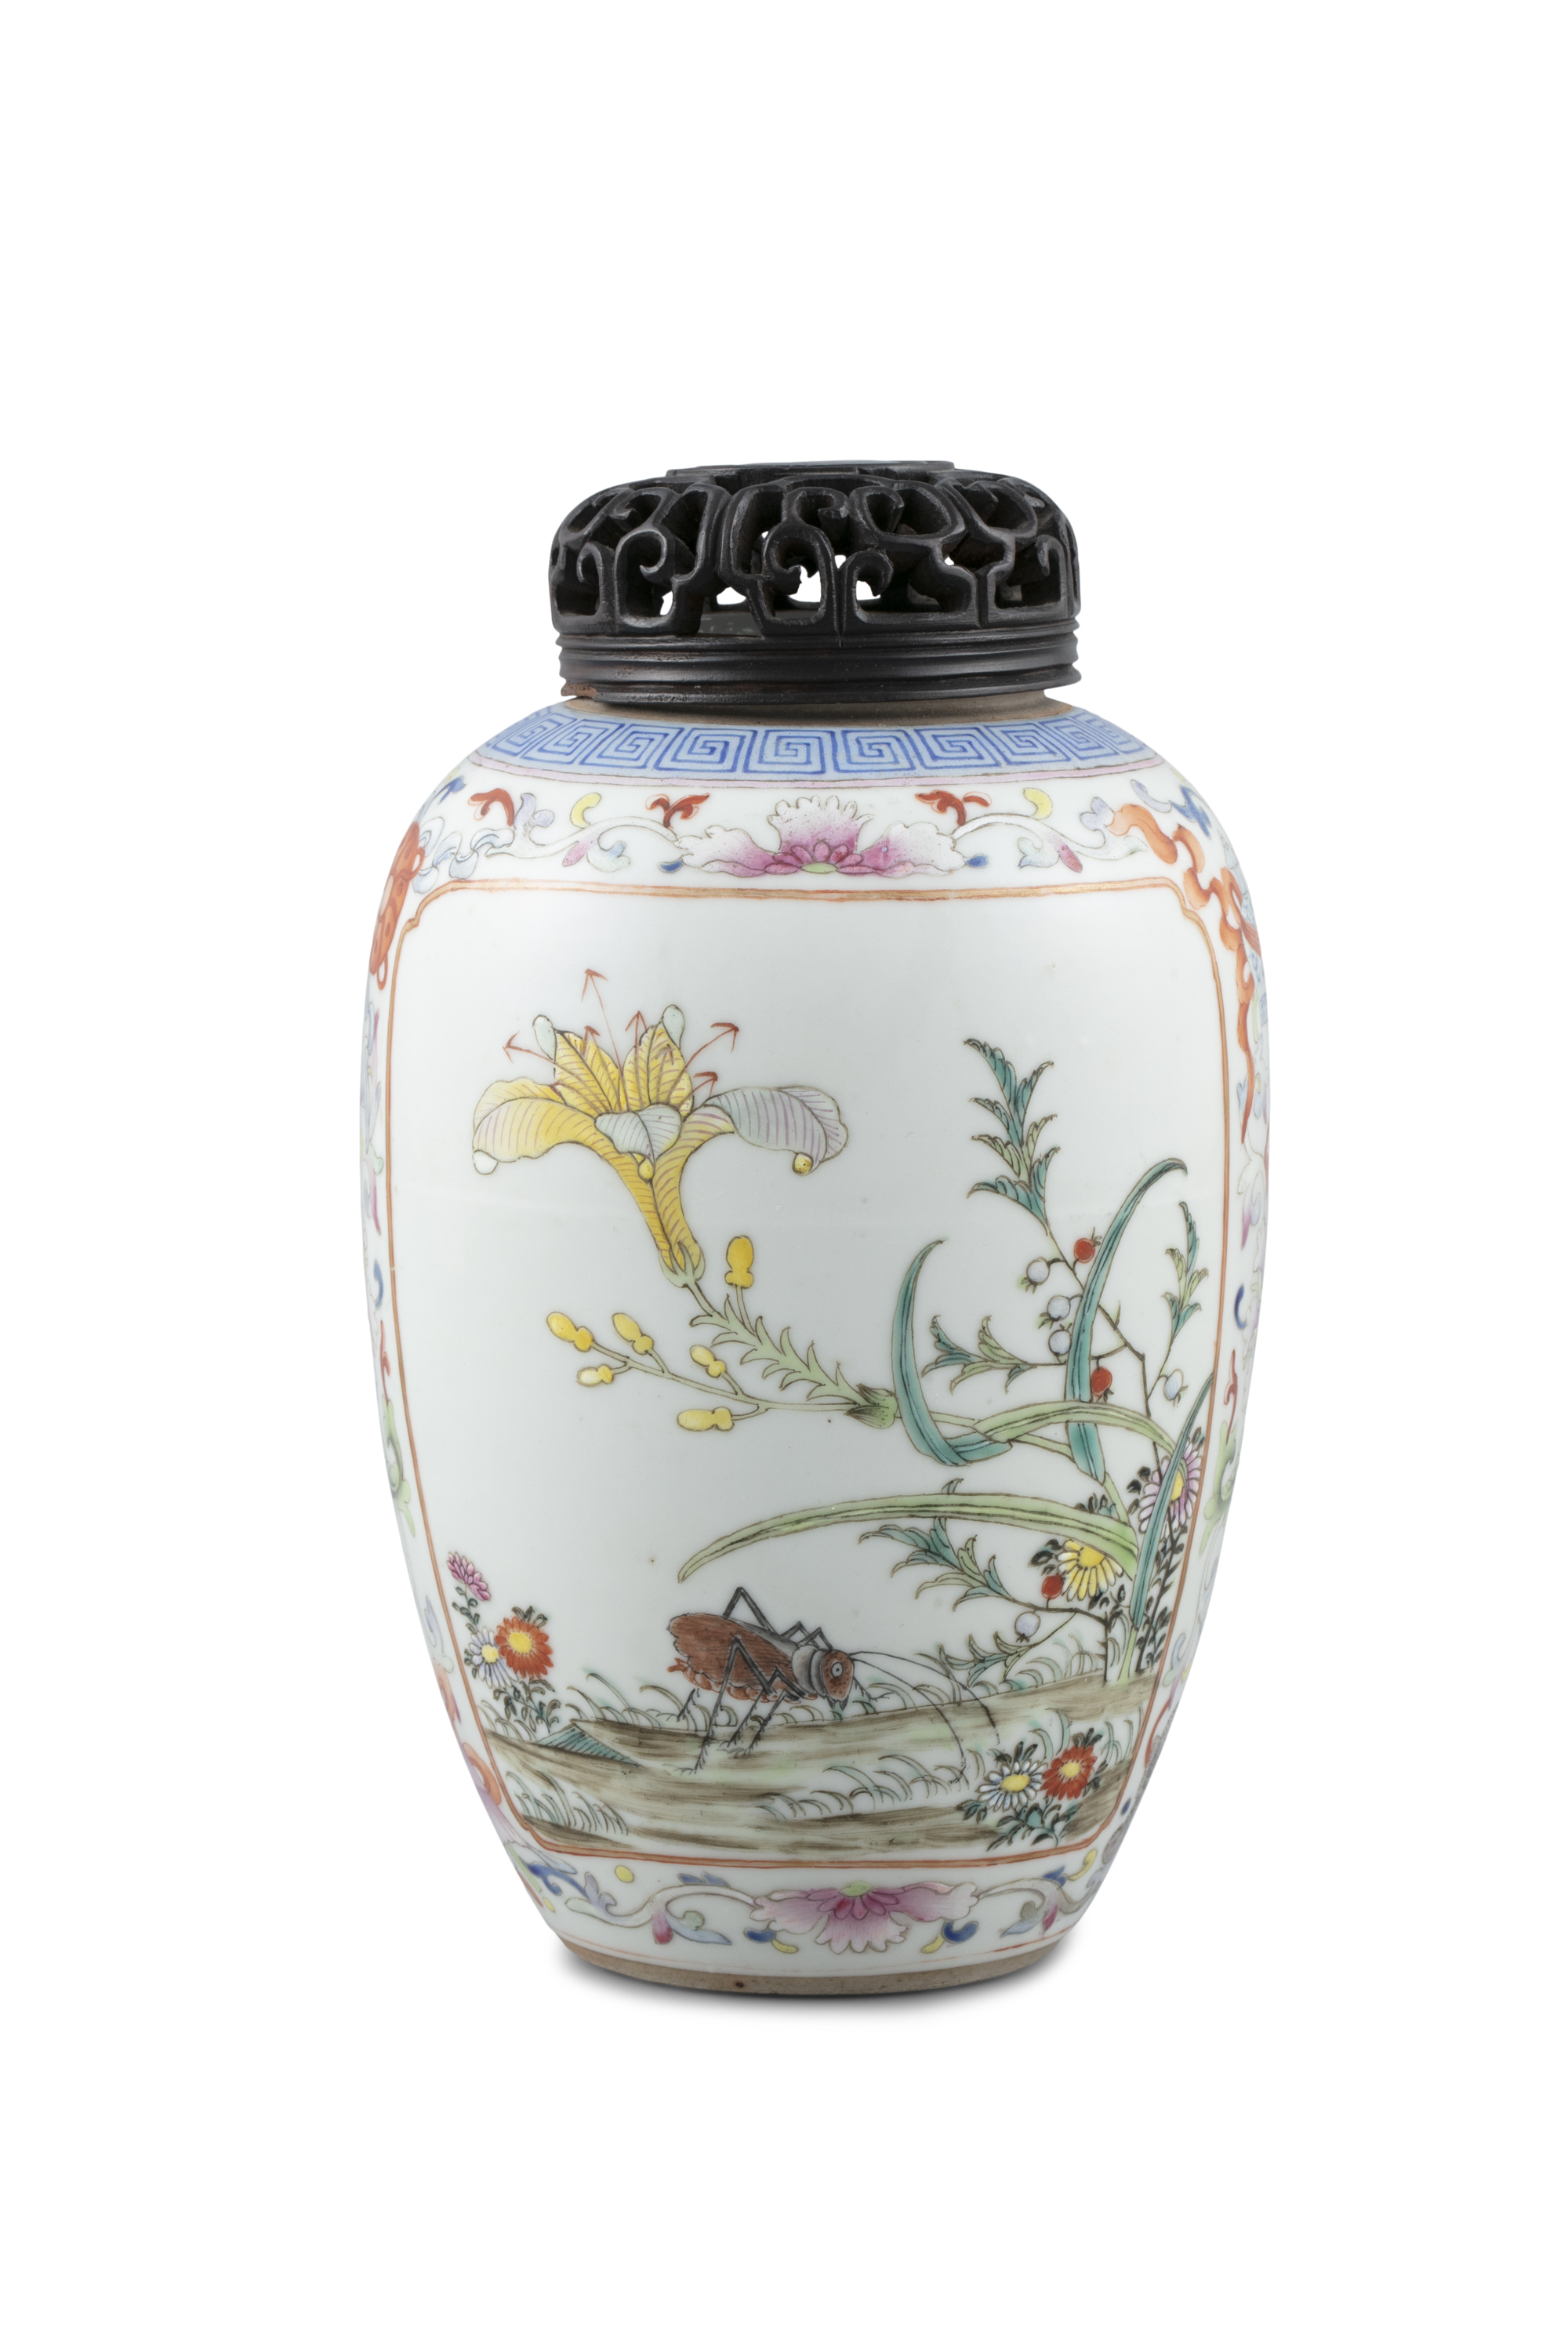 A FAMILLE ROSE PALETTE EGG SHAPED PORCELAIN VASE China, 19th to 20th century Richly adorned in the - Image 2 of 15